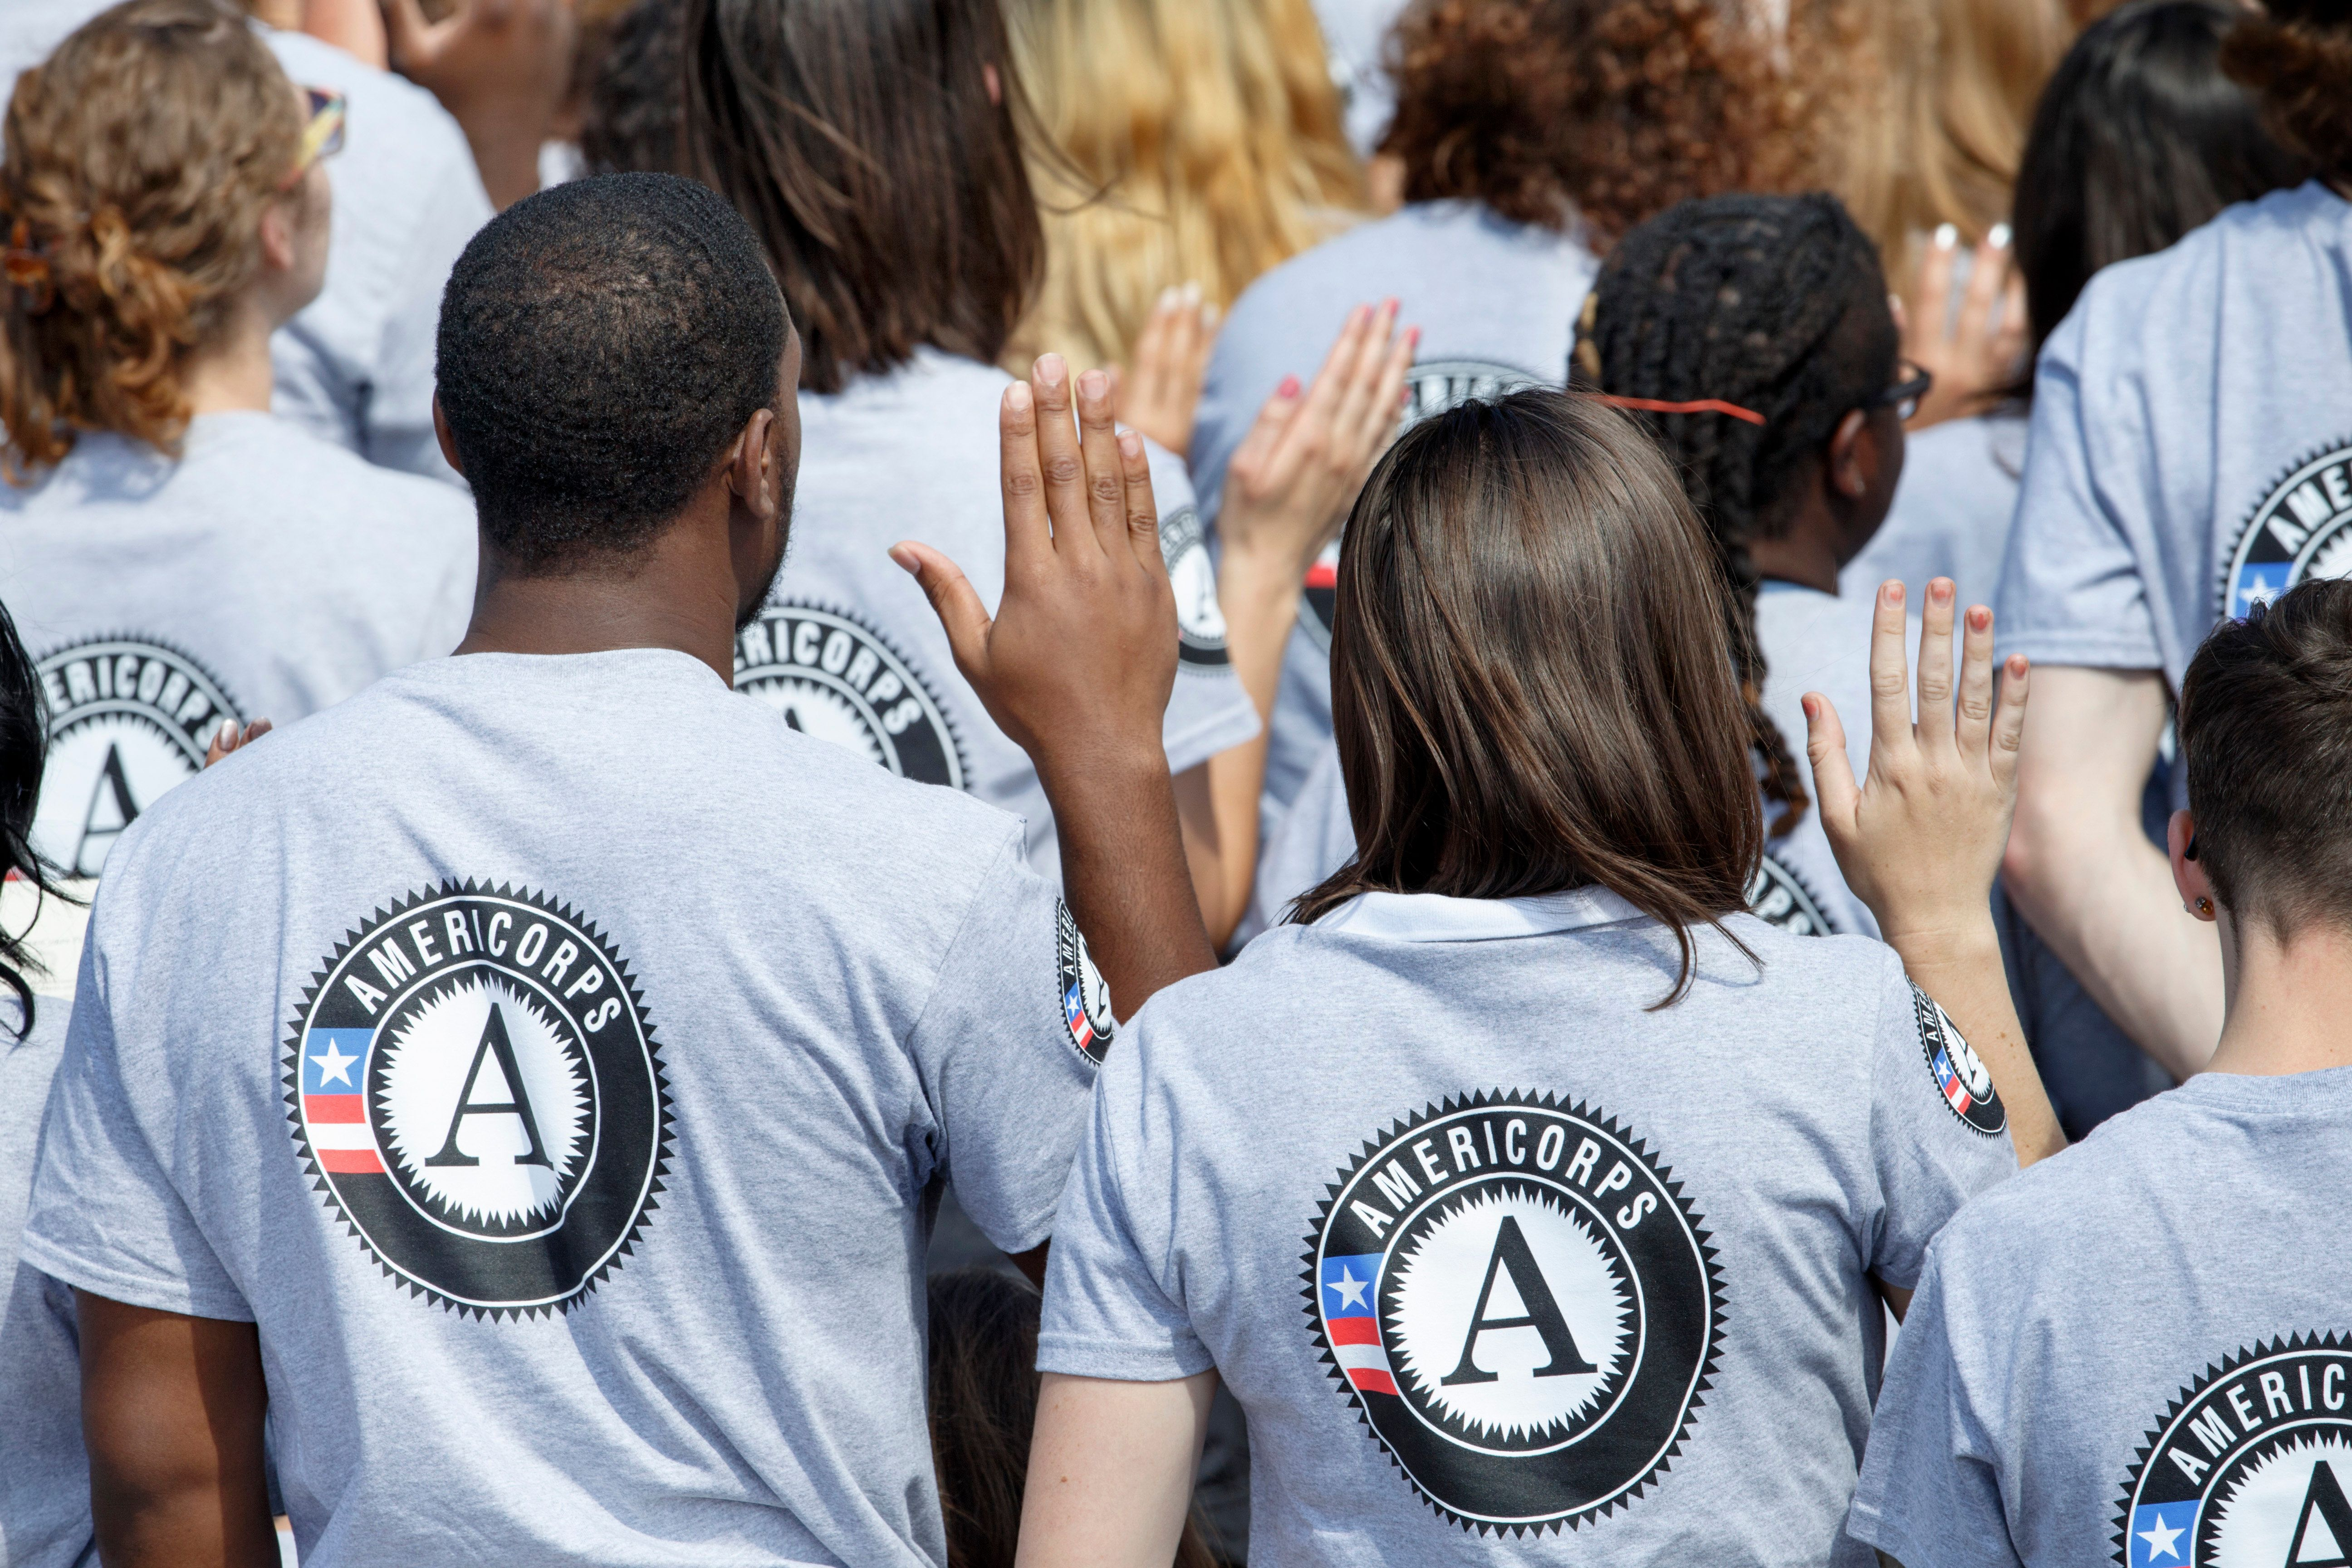 Today, the acceptance rates for some AmeriCorps programs are close to those of certain Ivy League schools, with droves of people turned away every year.